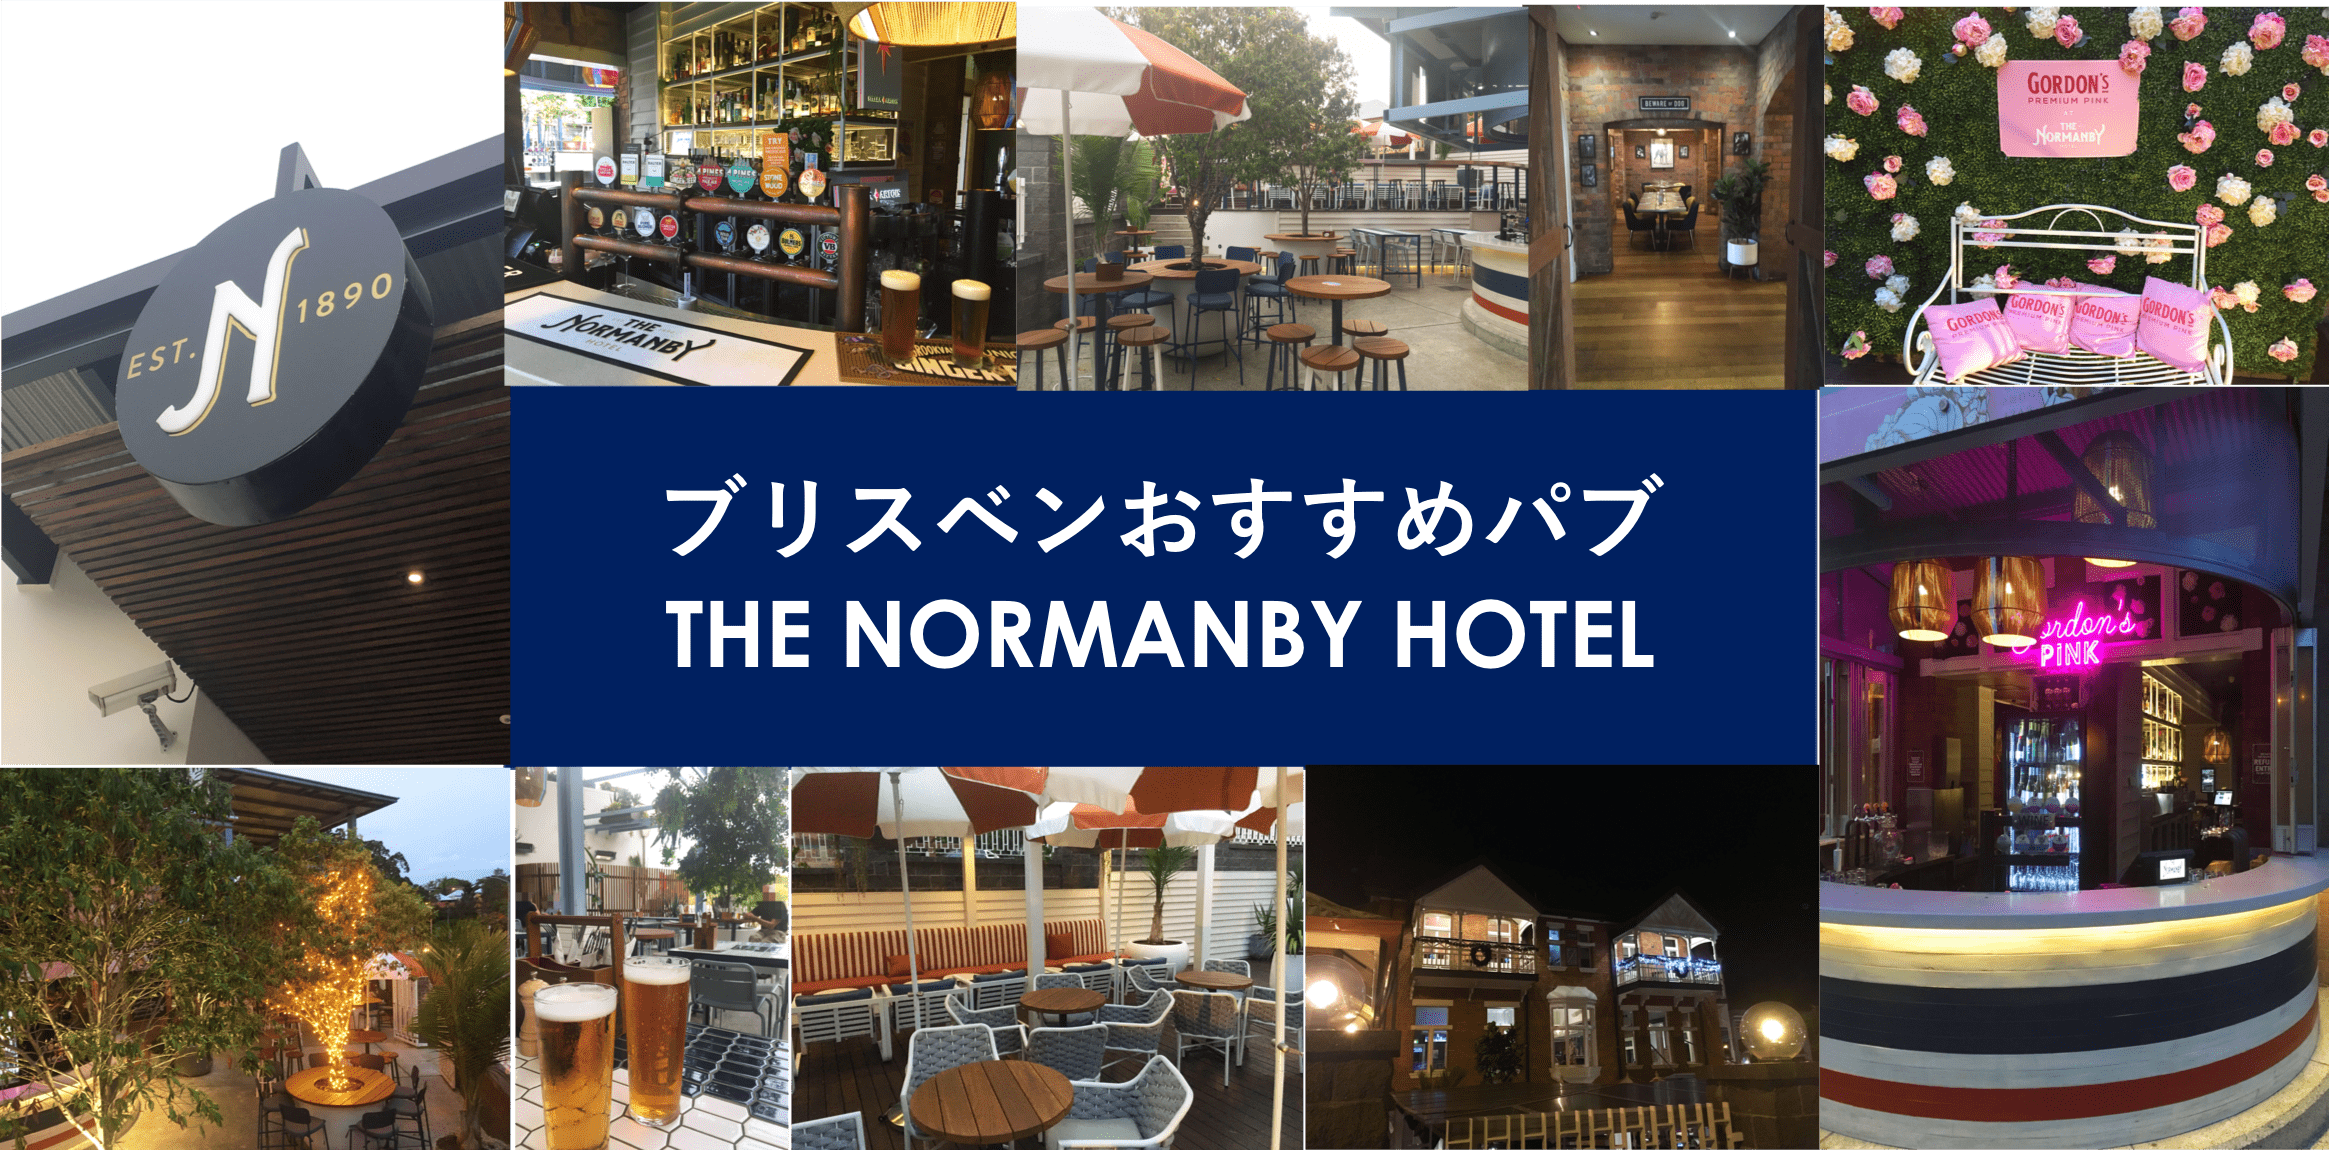 The Normanby hotel